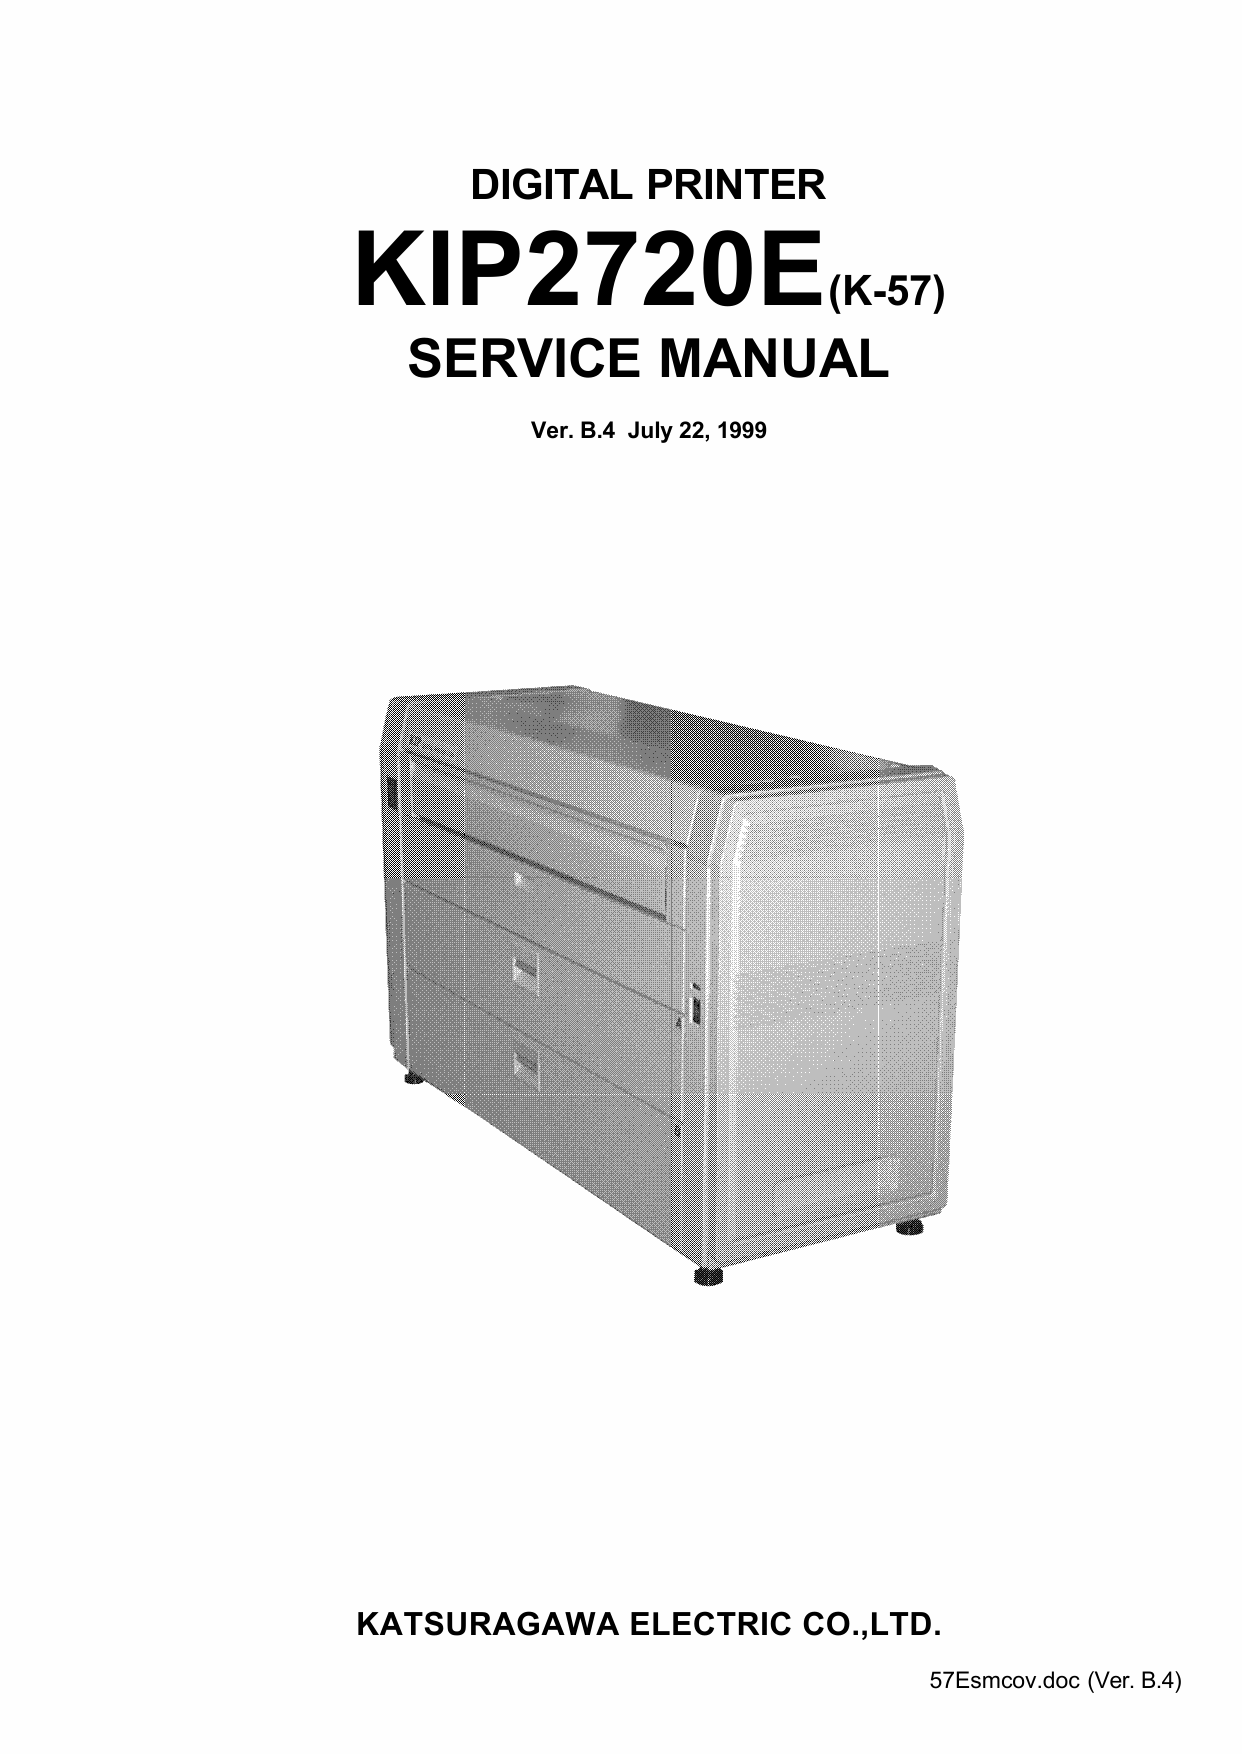 KIP 2720E K-57 Parts and Service Manual-1